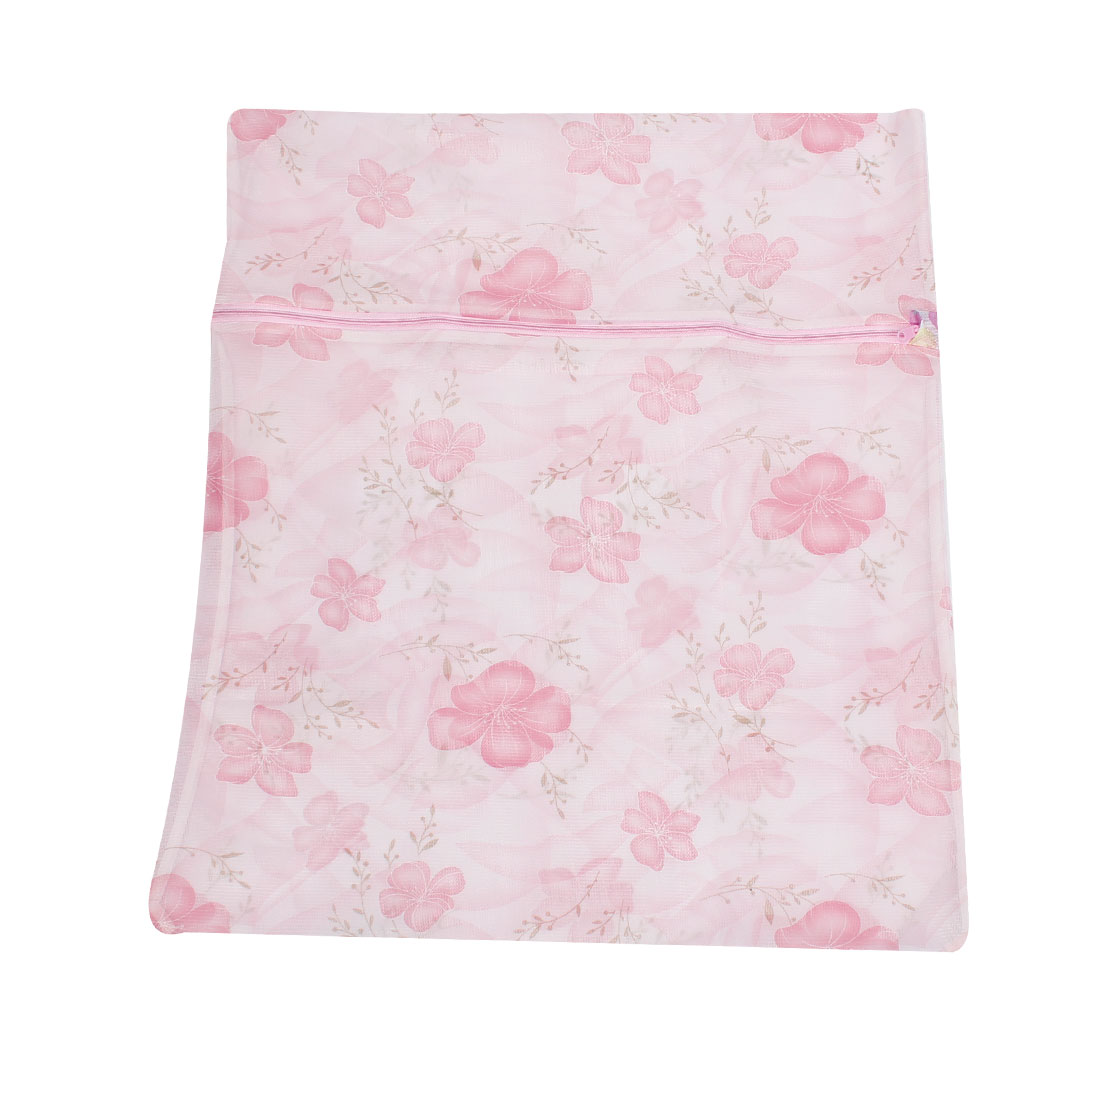 Laundry Pink Flower Print Meshy Clothes Washing Wash Bag Holder 58cm x 48cm